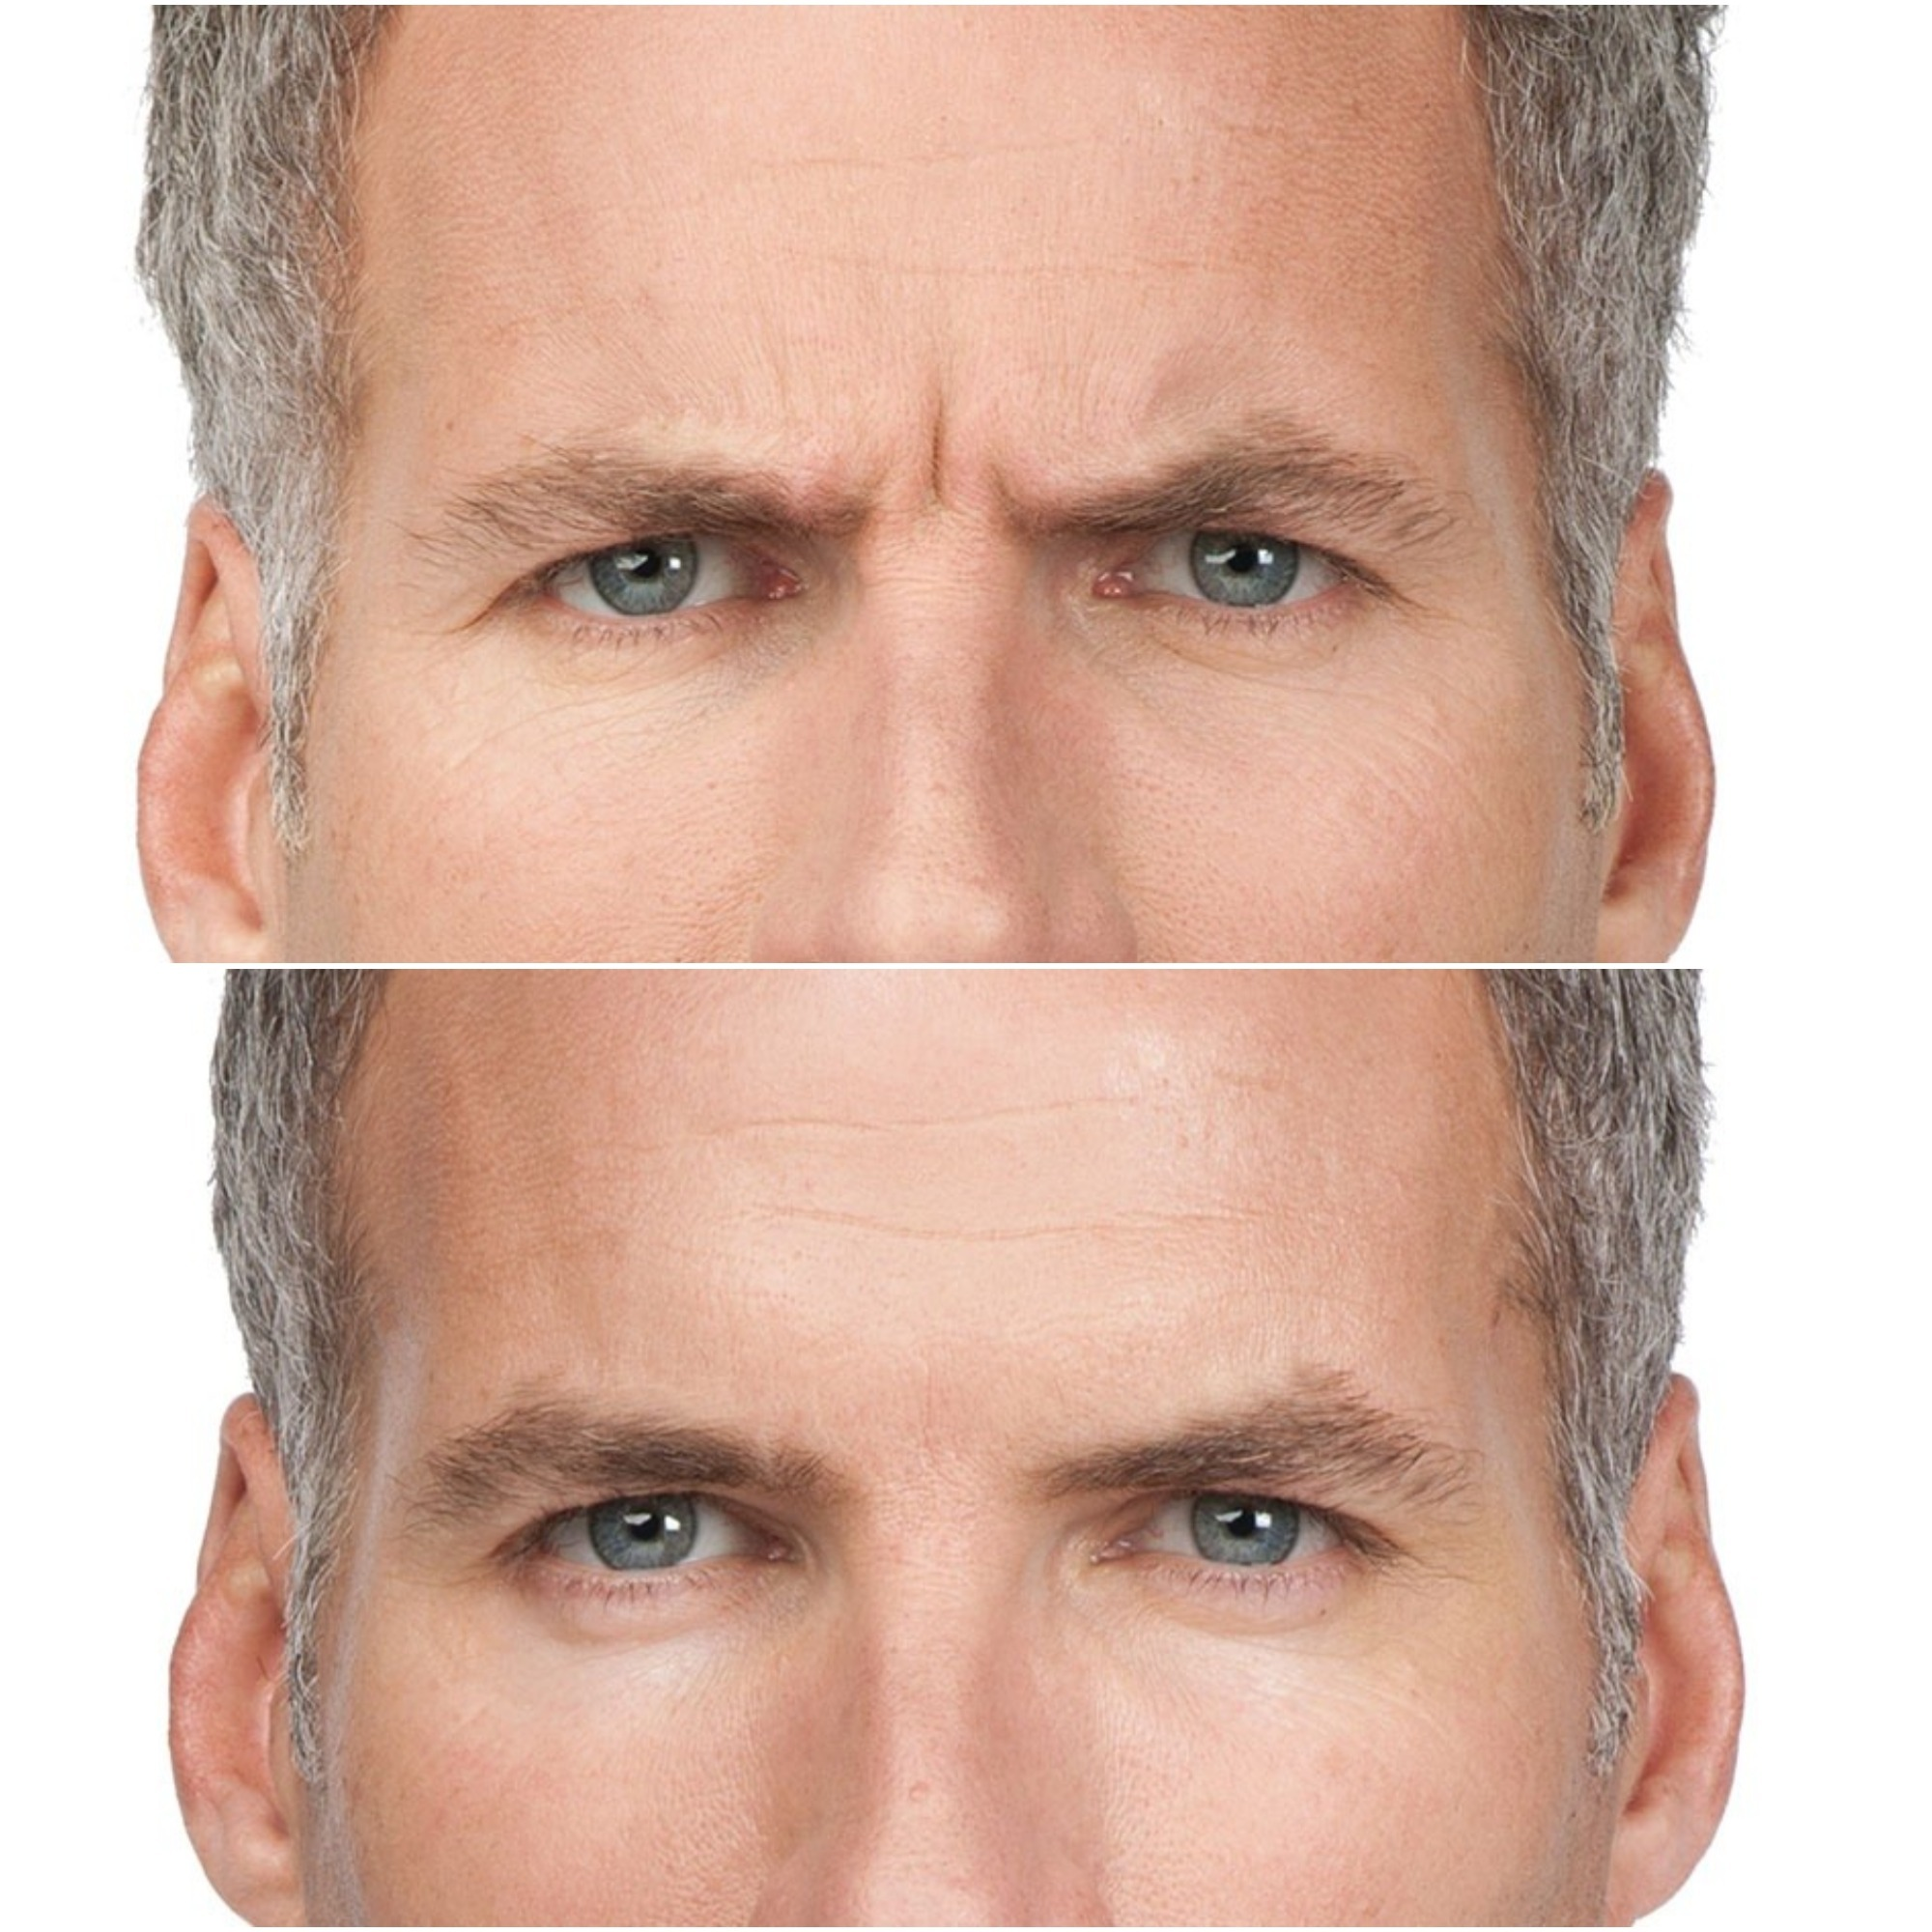 20 popular botox treatment questions answered zwivel pictures taken before and 7 days after botox treatments for frown lines credits botox cosmetic solutioingenieria Gallery